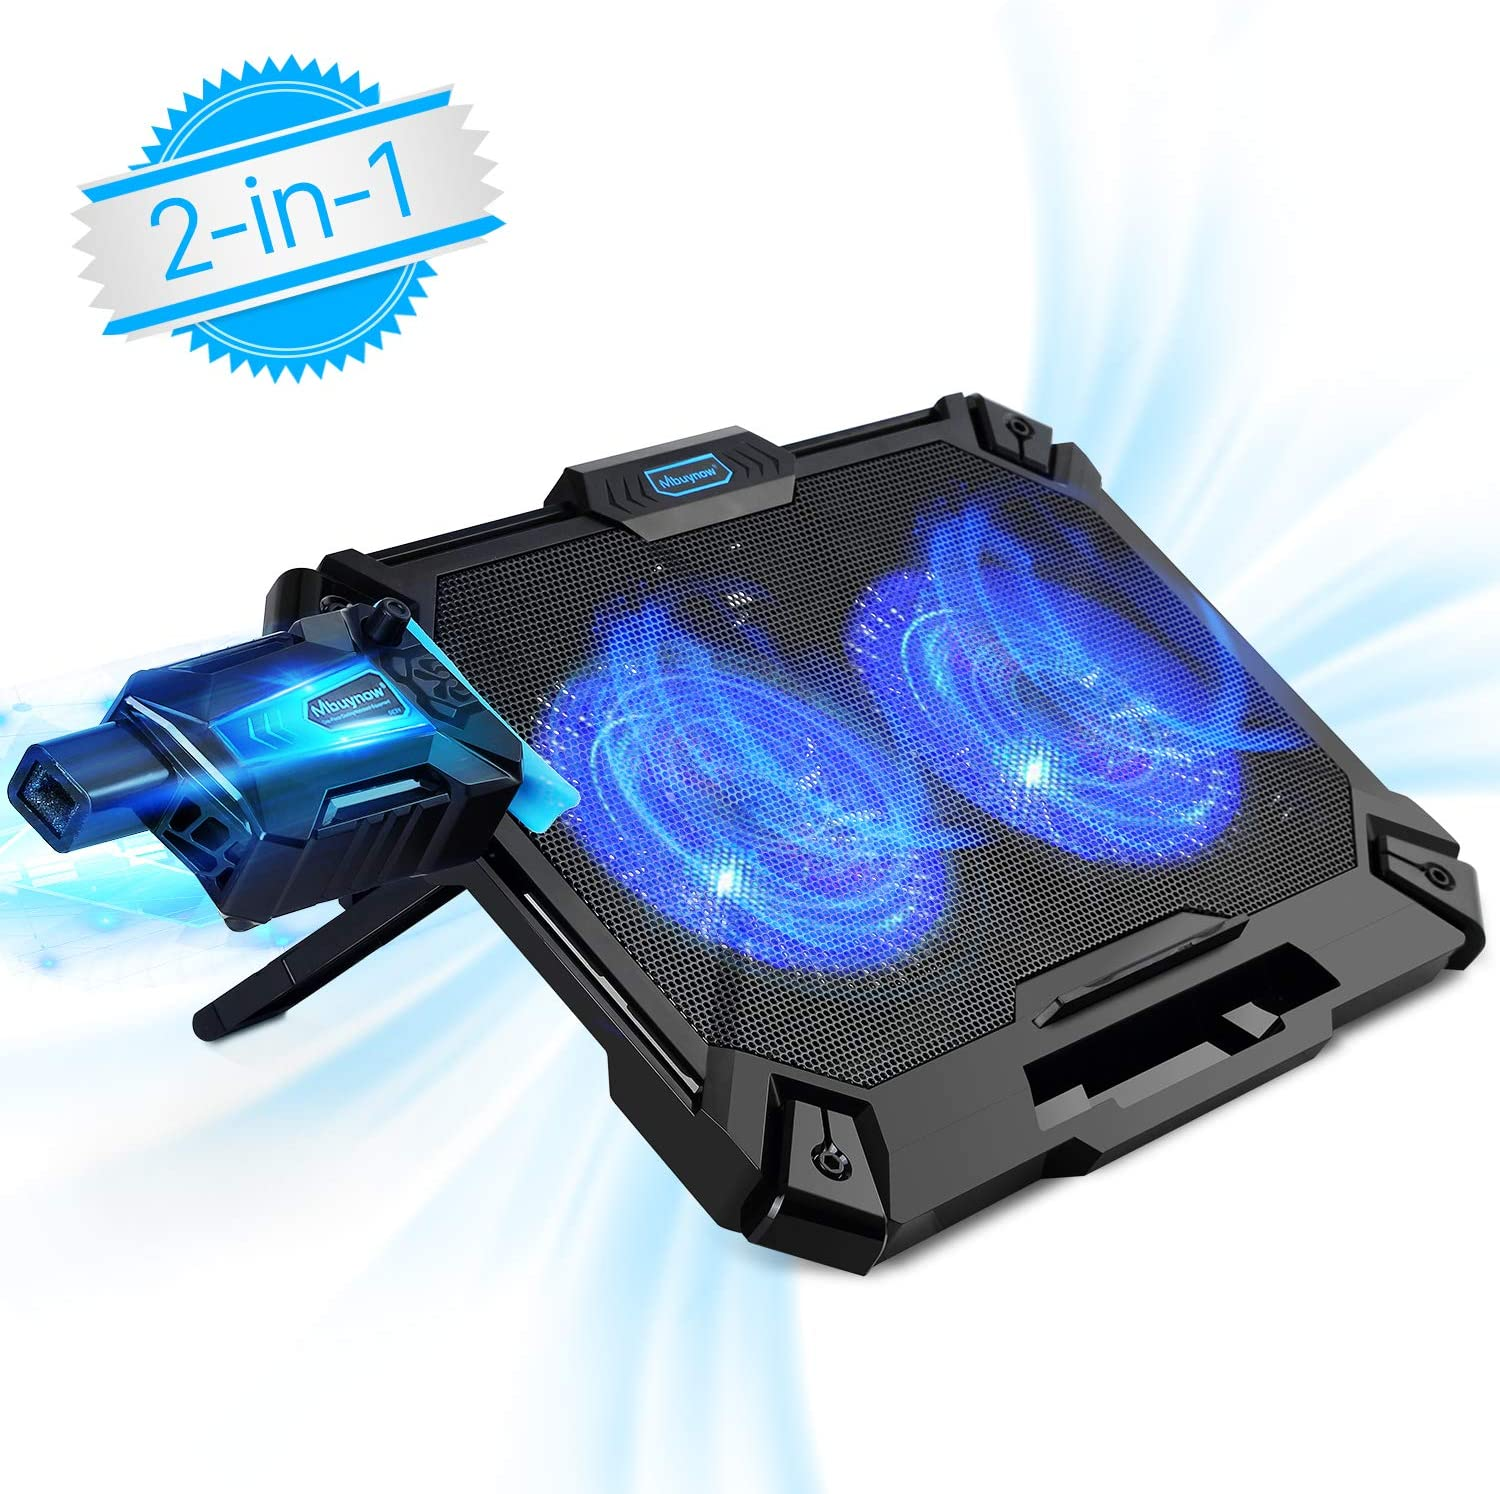 Laptop Cooler 15.6 Inch, Mbuynow 2 in 1 Laptop Cooling Pad with Mini Vacuum USB Laptop Fan - Slim Portable - Intelligent Temperature-Control, Silencer, 8 Level Adjustable Height Stand and Phone Holder